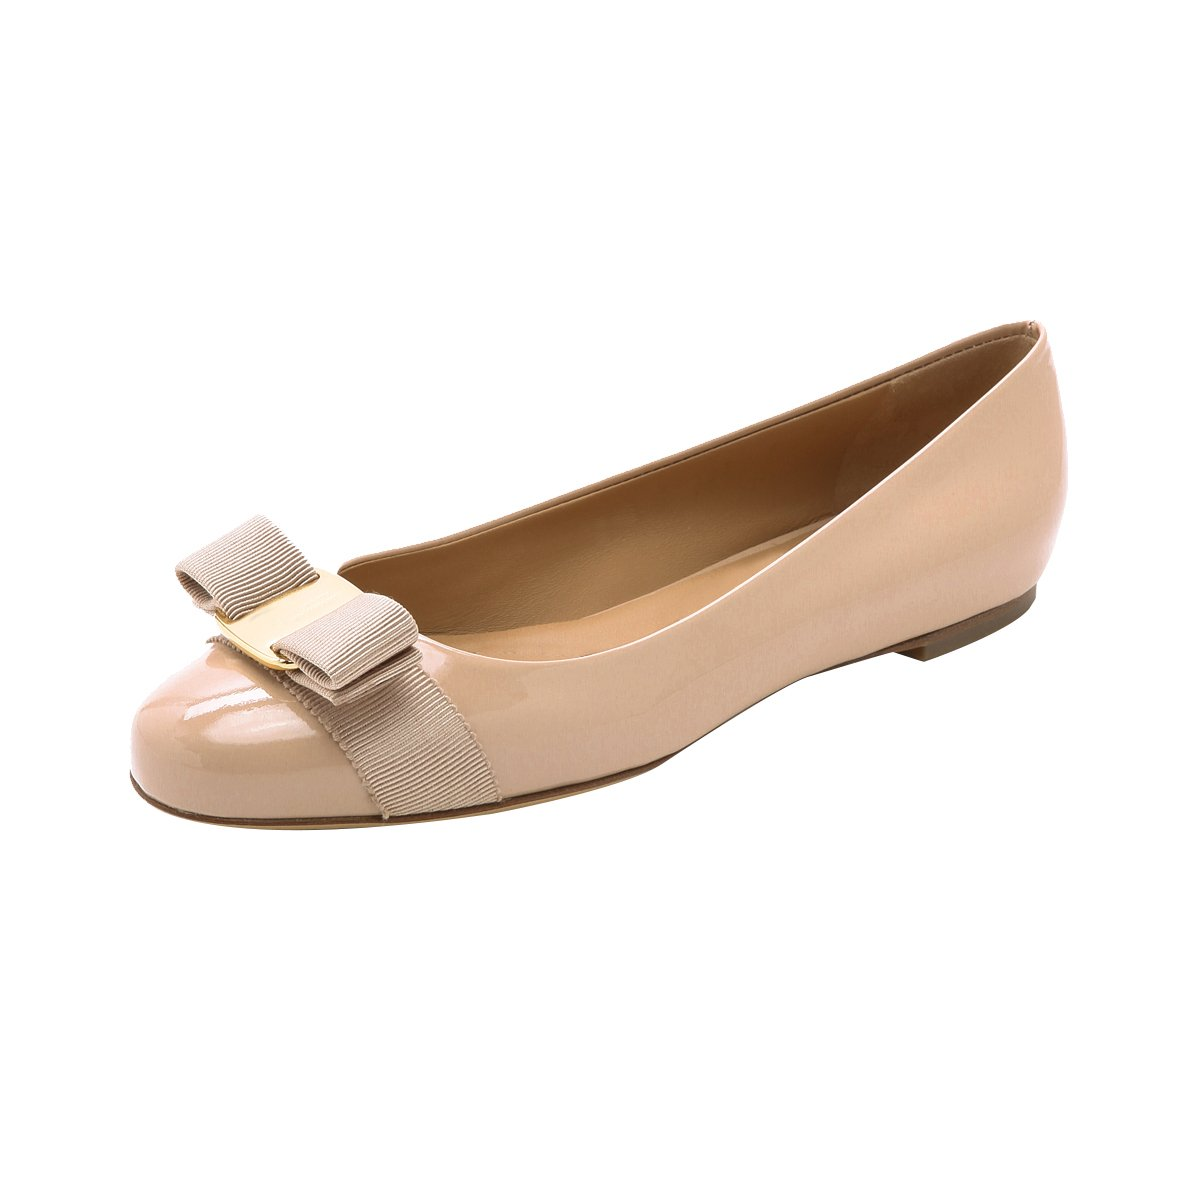 QianZuLian Womens Bowknot Flats Pumps Round head Slip On Dress Shoes Comfort for Home Leisure B0757MJ64Y 10.5 B(M) US|Nude